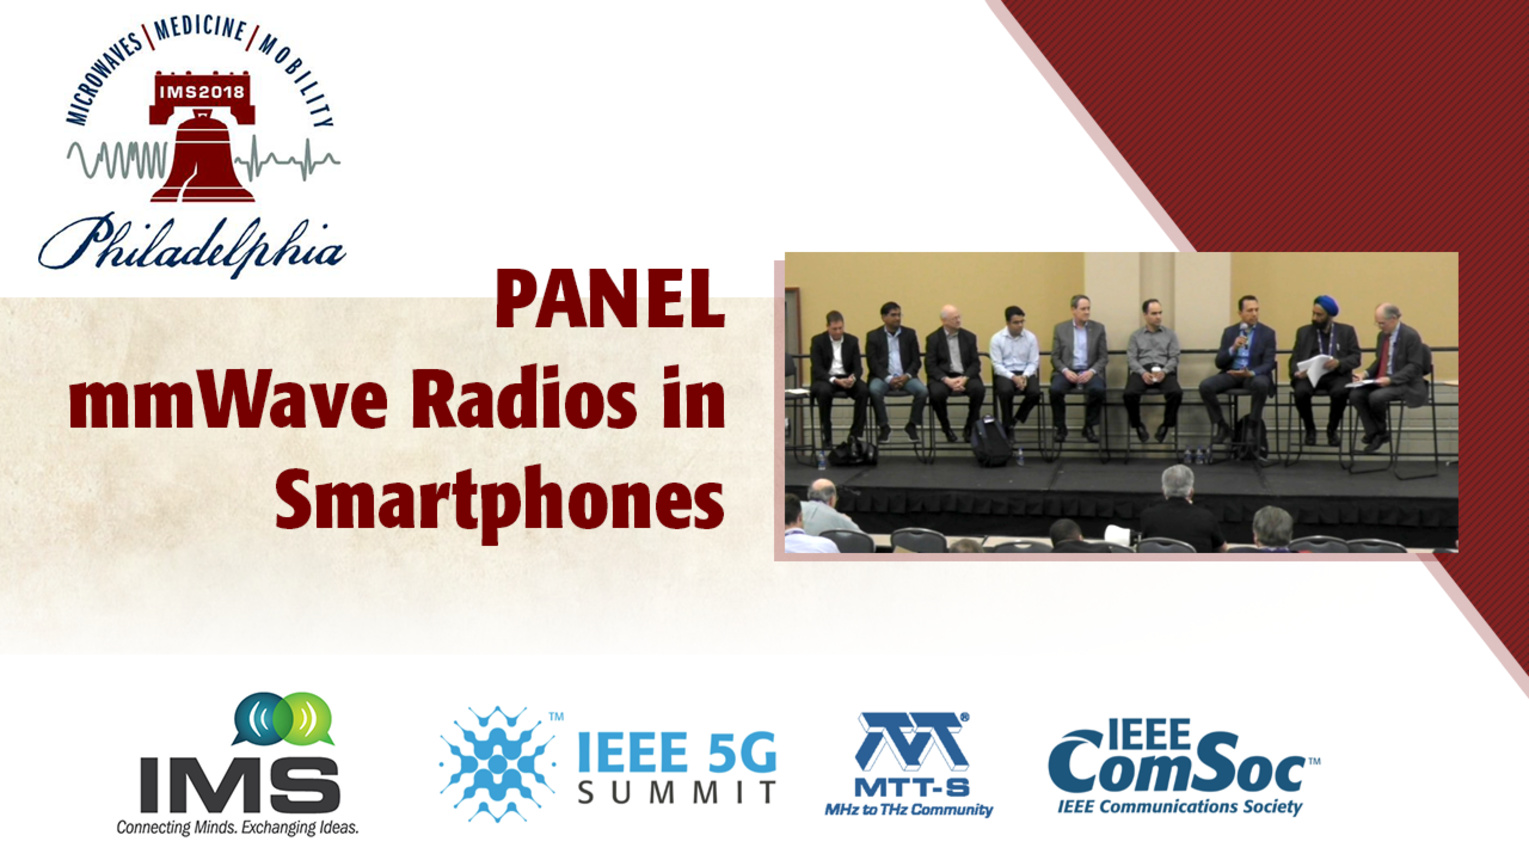 mmWave Radios in Smartphones: What they will look like in 2, 5 and 10 years